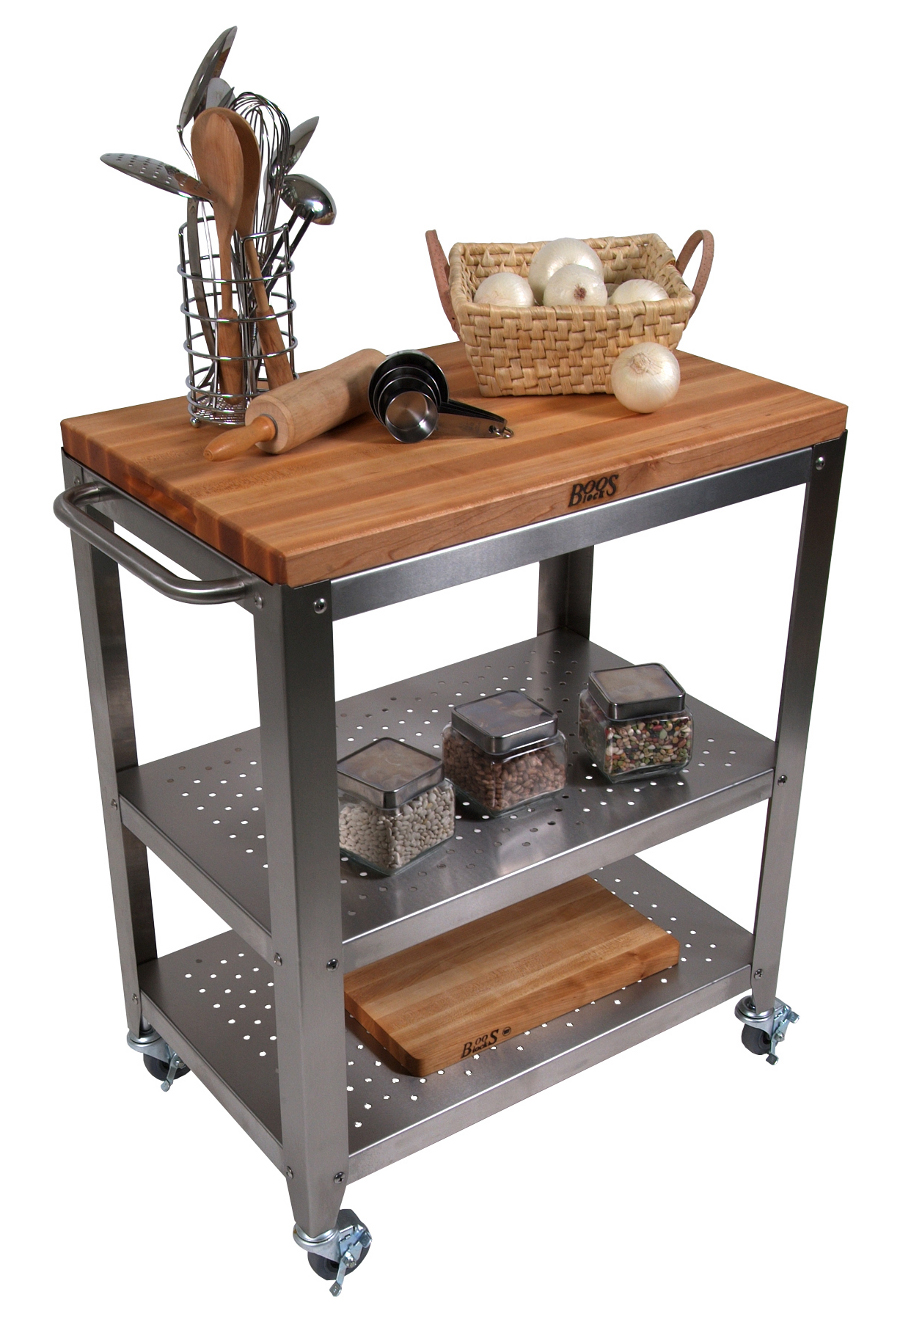 Charming John Boos Cucina Culinarte Kitchen Cart CU CULART30. John Boos Maple Butcher  Block ... Photo Gallery